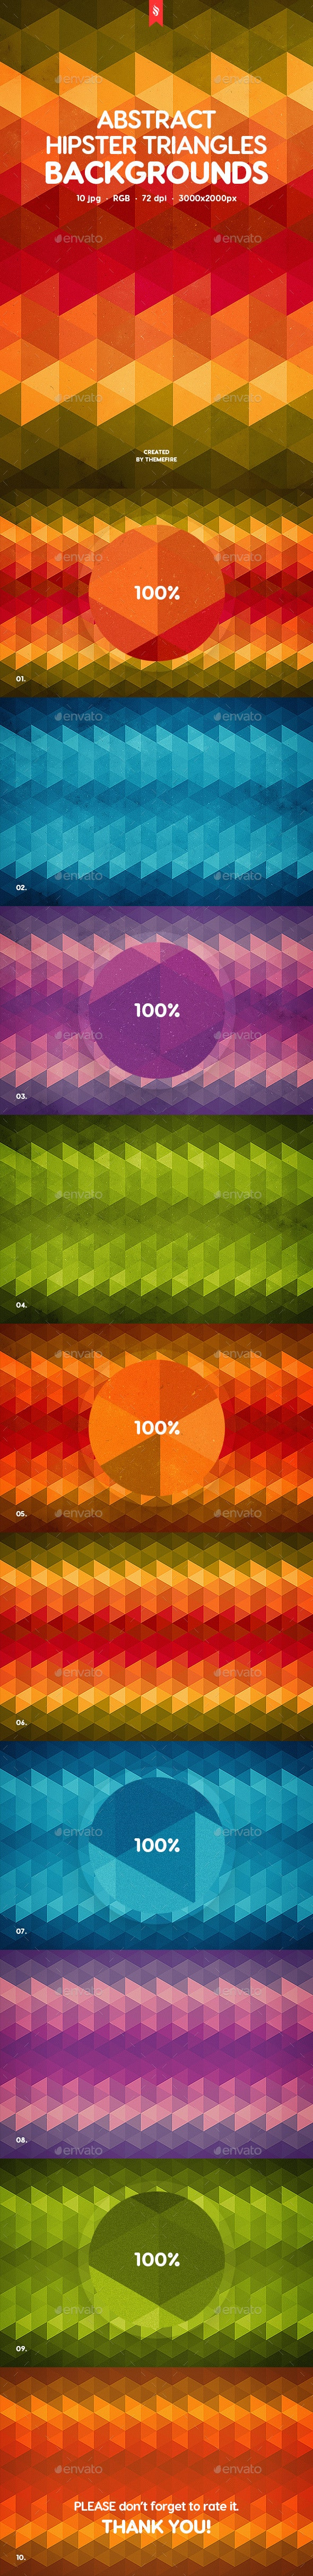 Hipster Triangles Backgrounds - Patterns Backgrounds